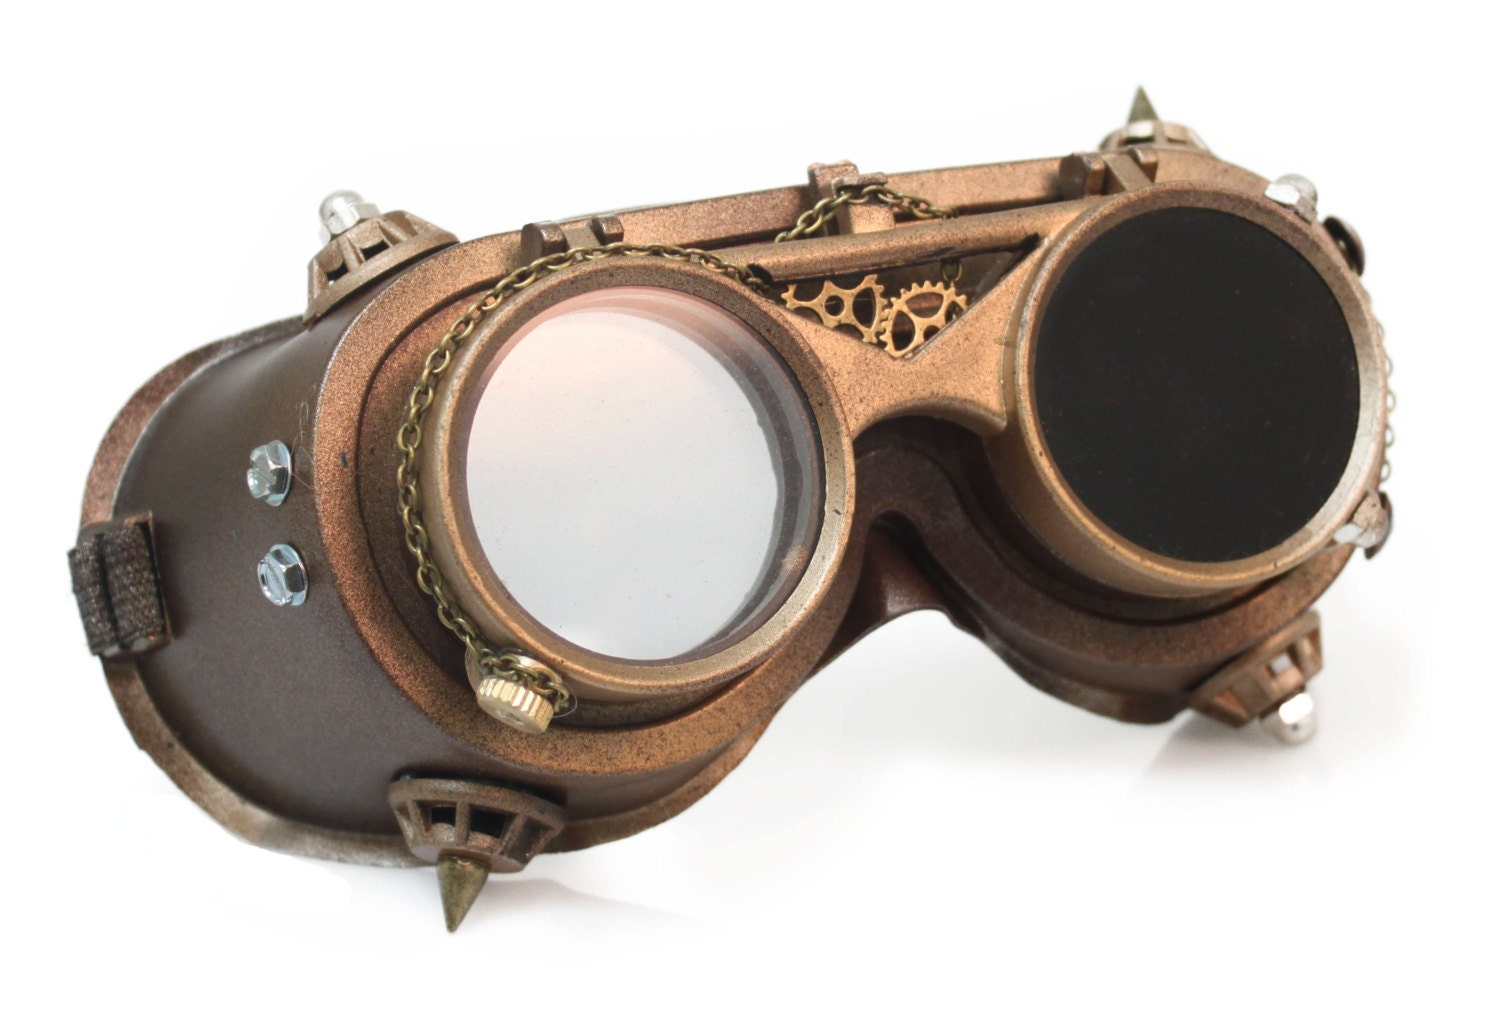 How to Make Cybergoth Goggles forecasting